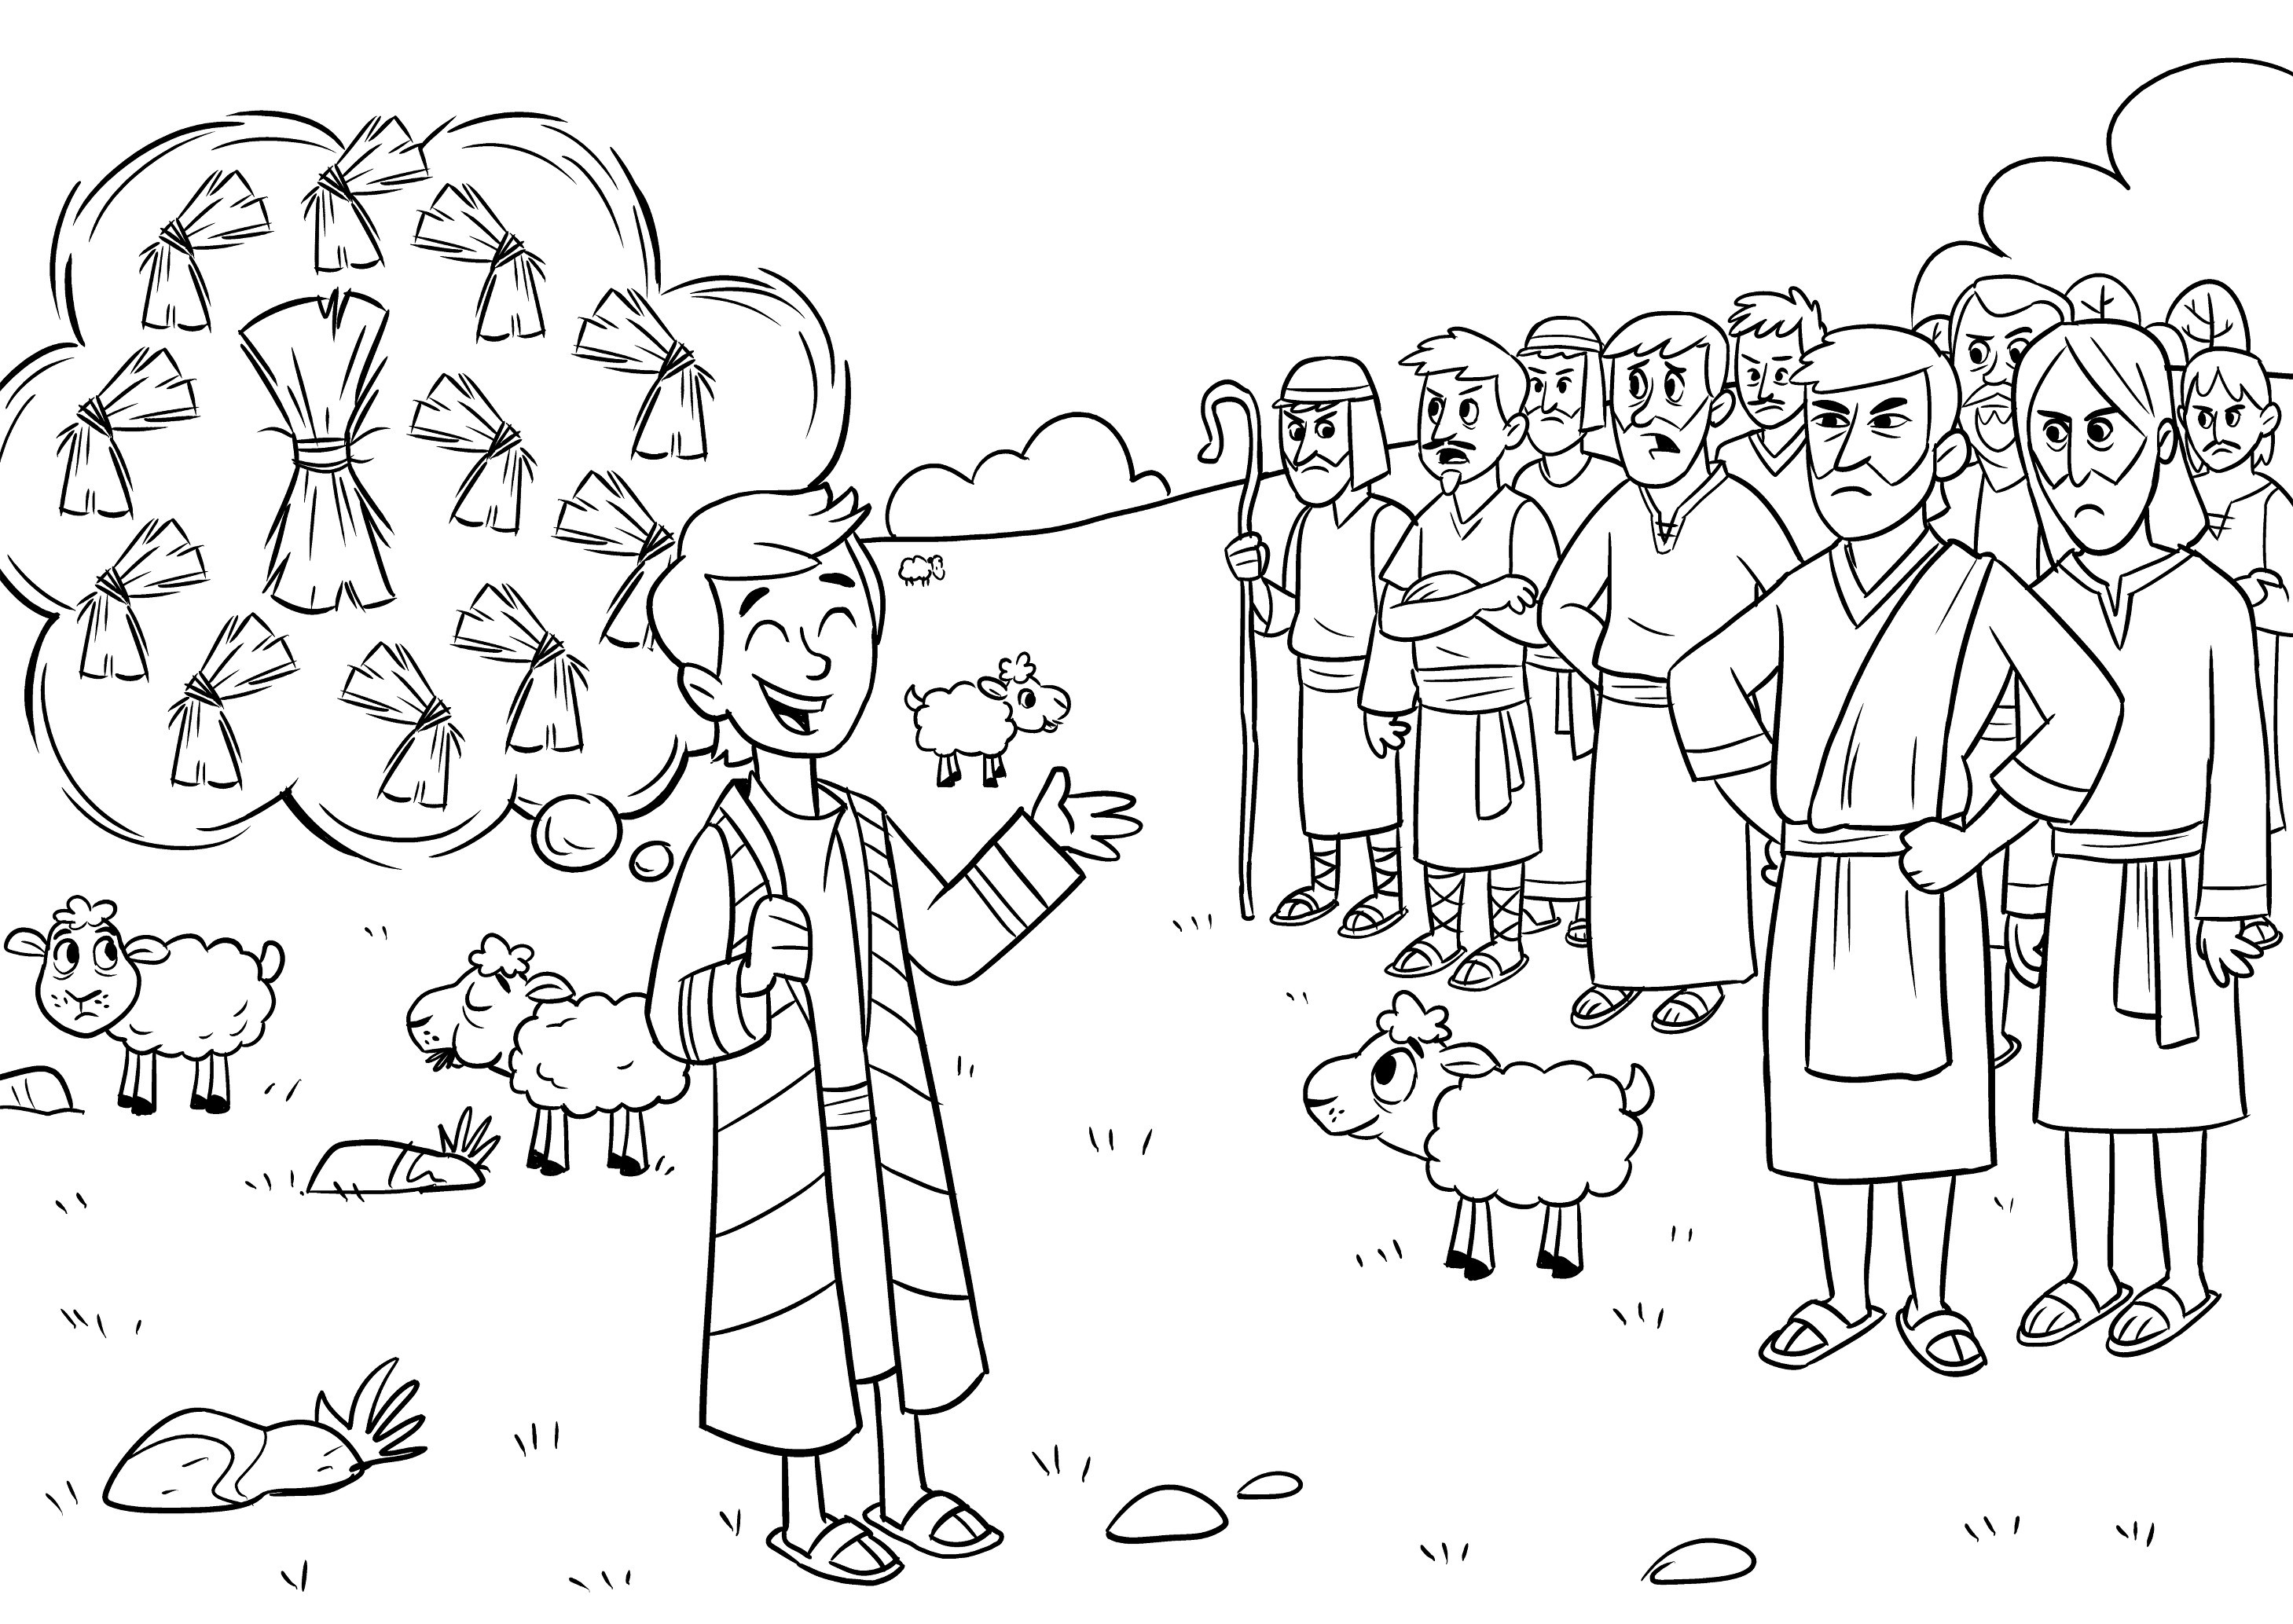 Joseph Son Of Jacob Coloring Pages At Getcolorings